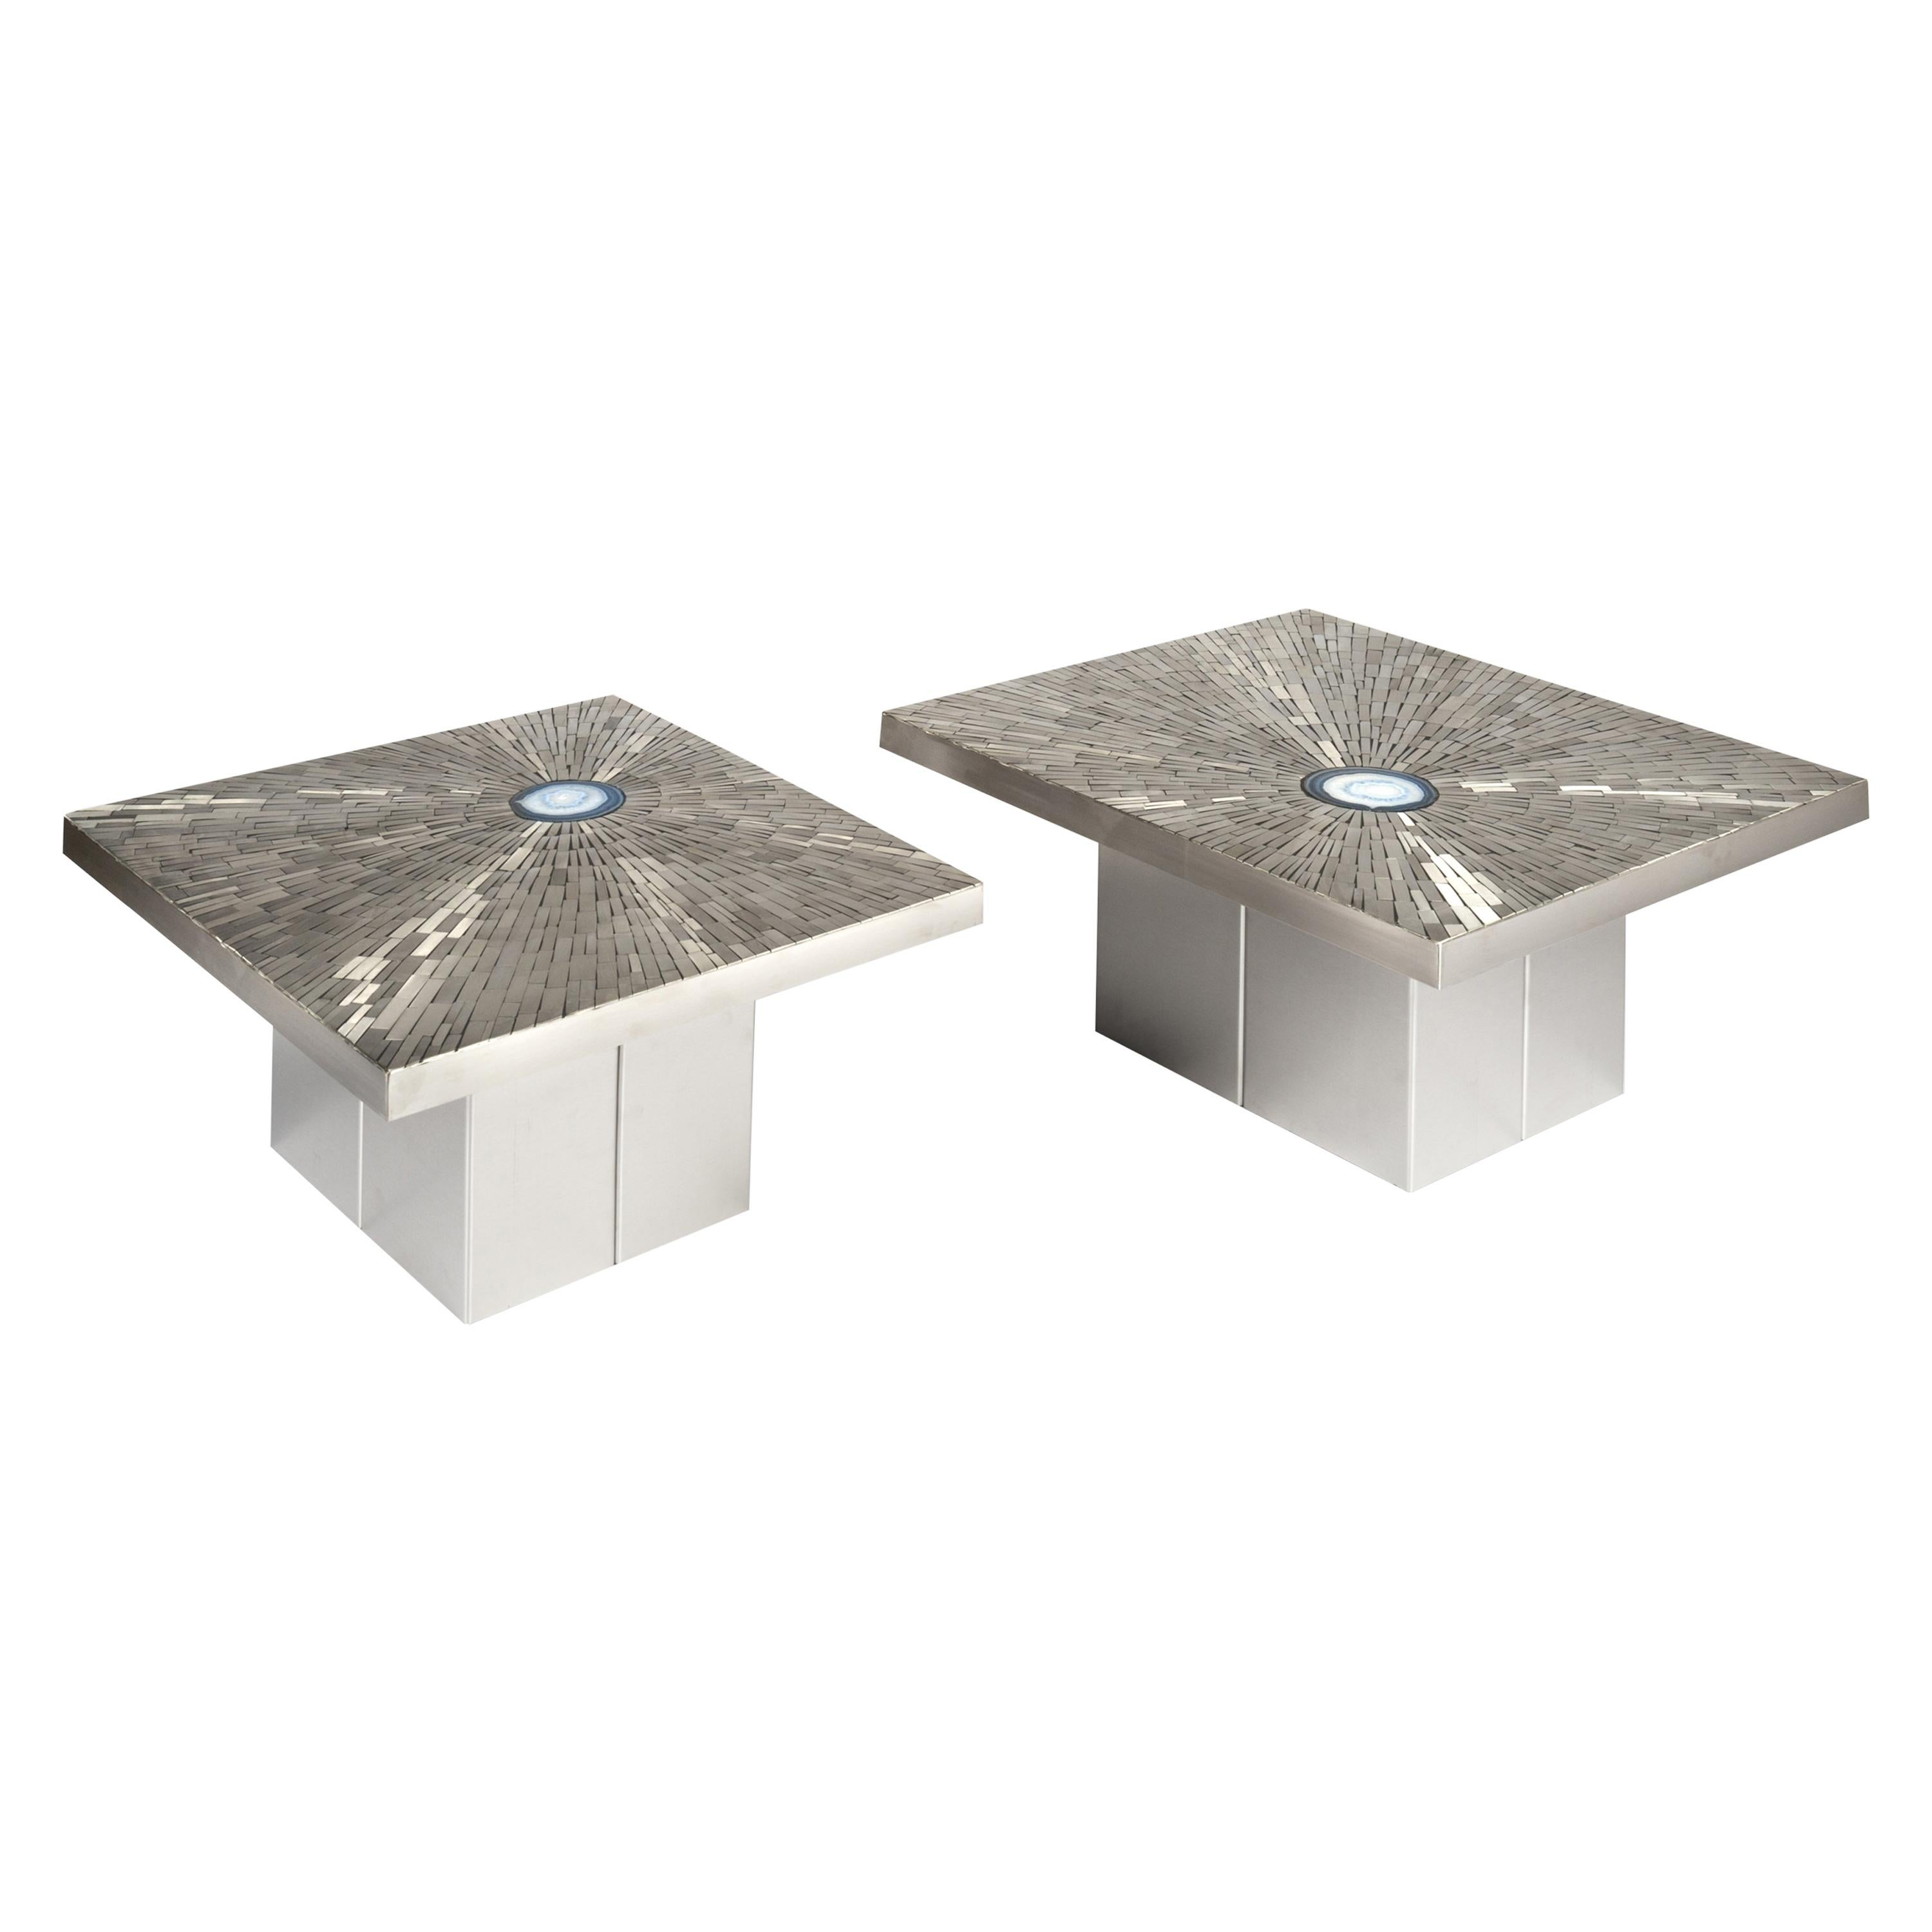 Pair of Side Table in Stainless Steel Mosaic Inlay Agates by Stan Usel